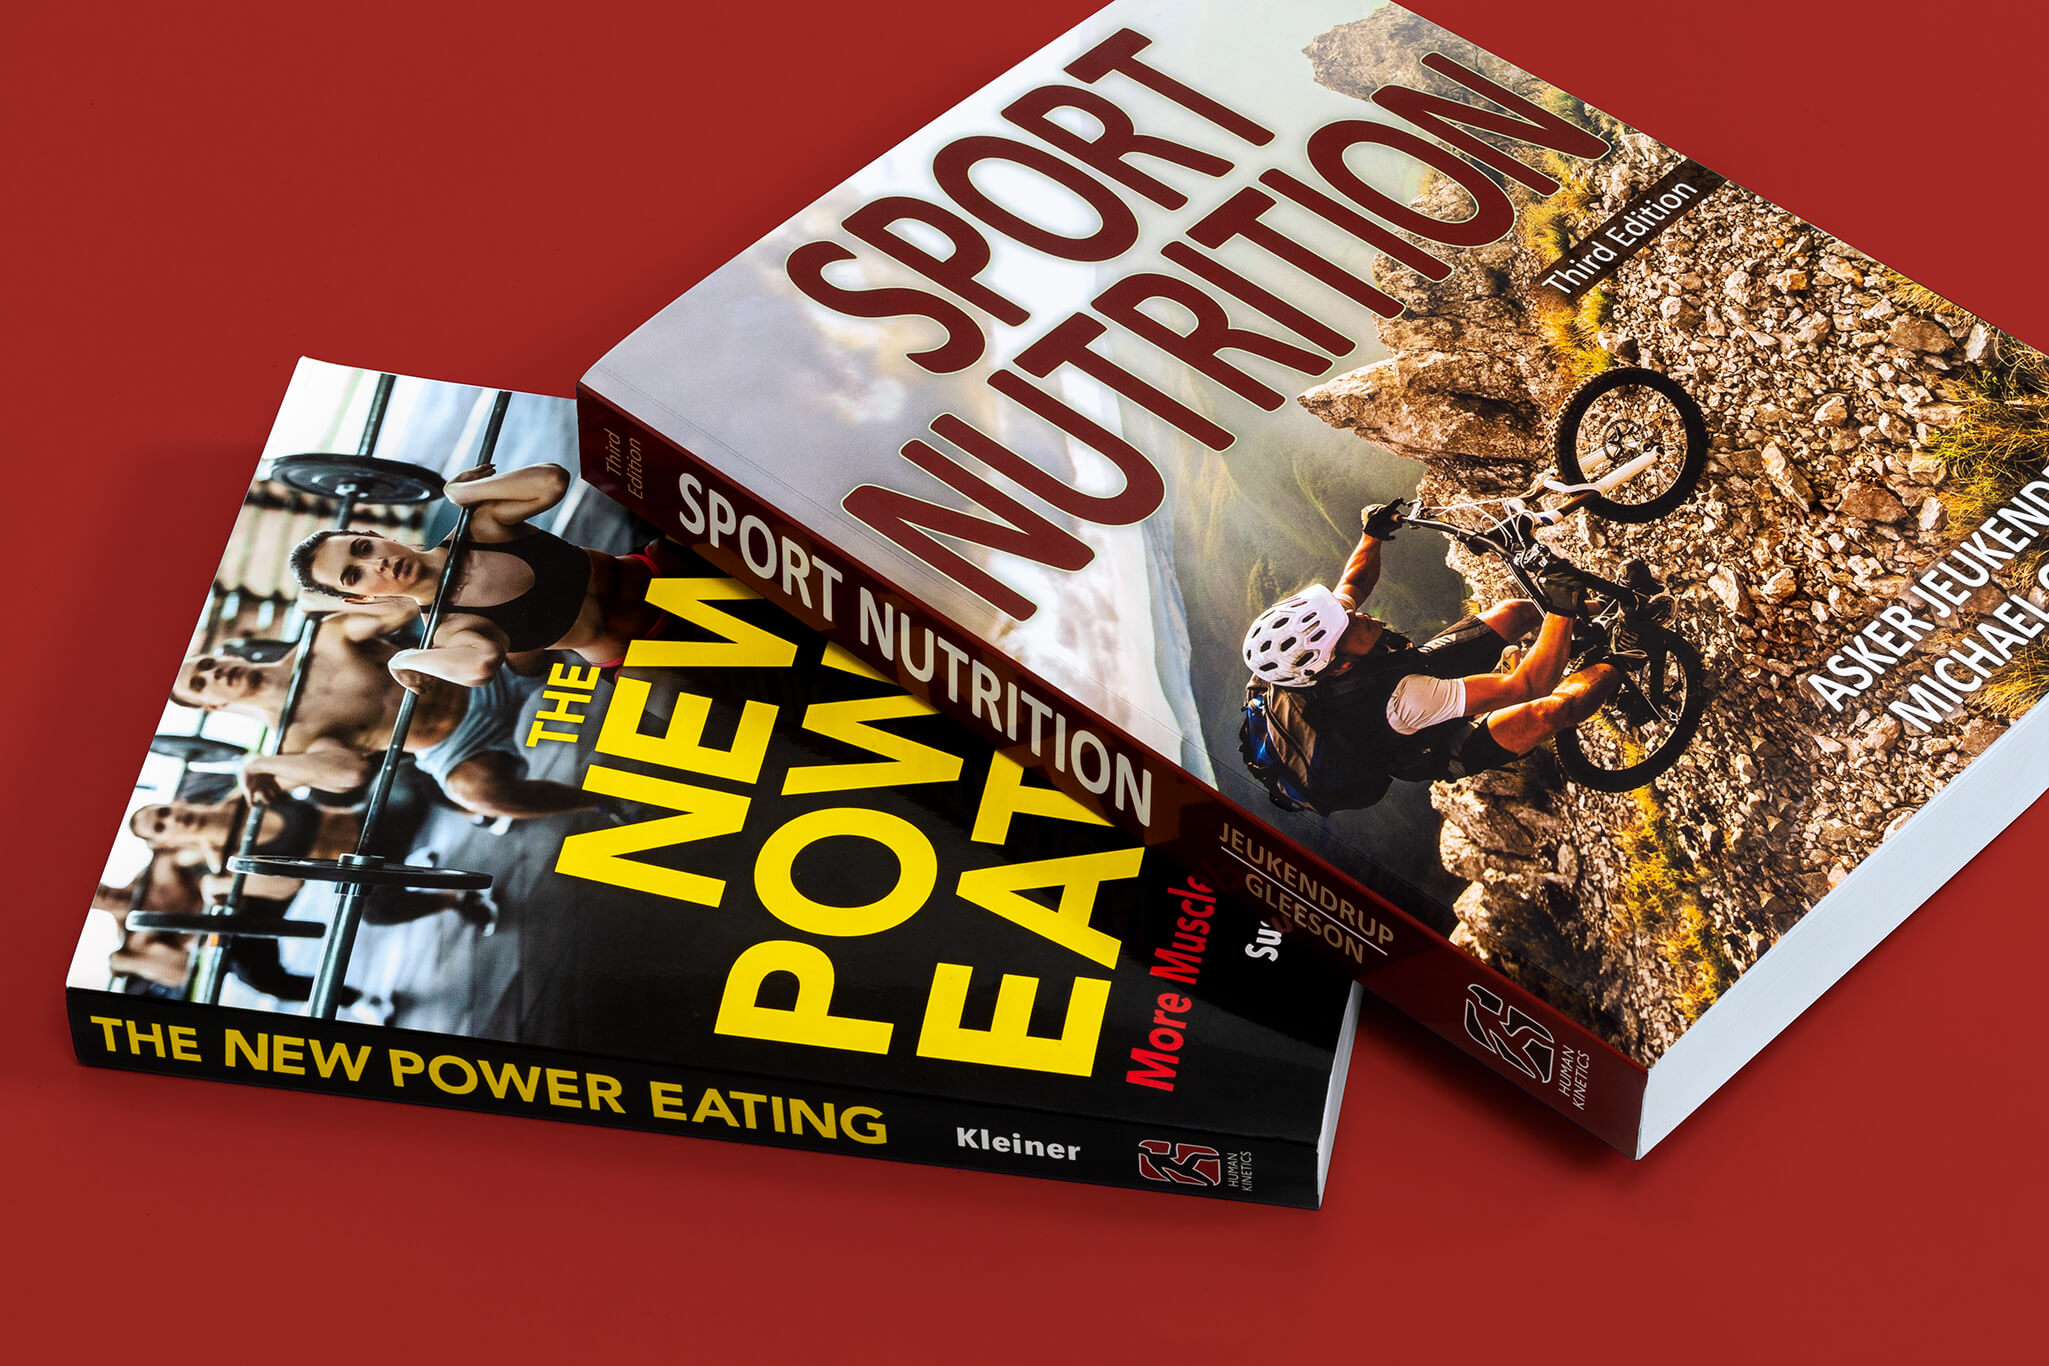 Sport Nutrition and The New Power Eating